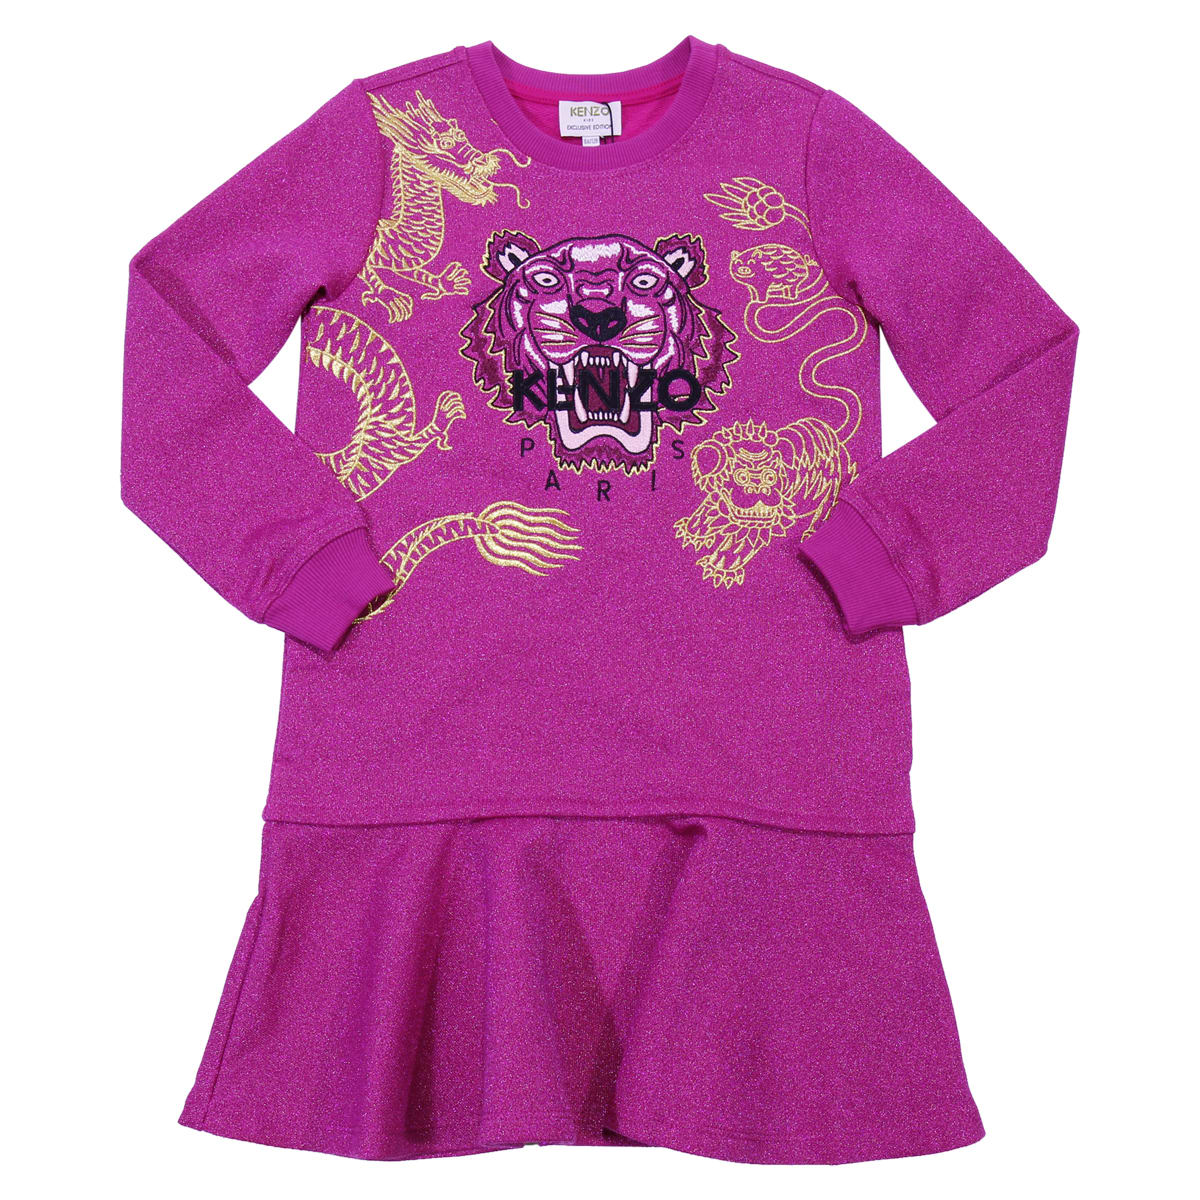 Kenzo Kenzo Fuchsia Dress Limited Edition Chinese New Year In Cotton Blend